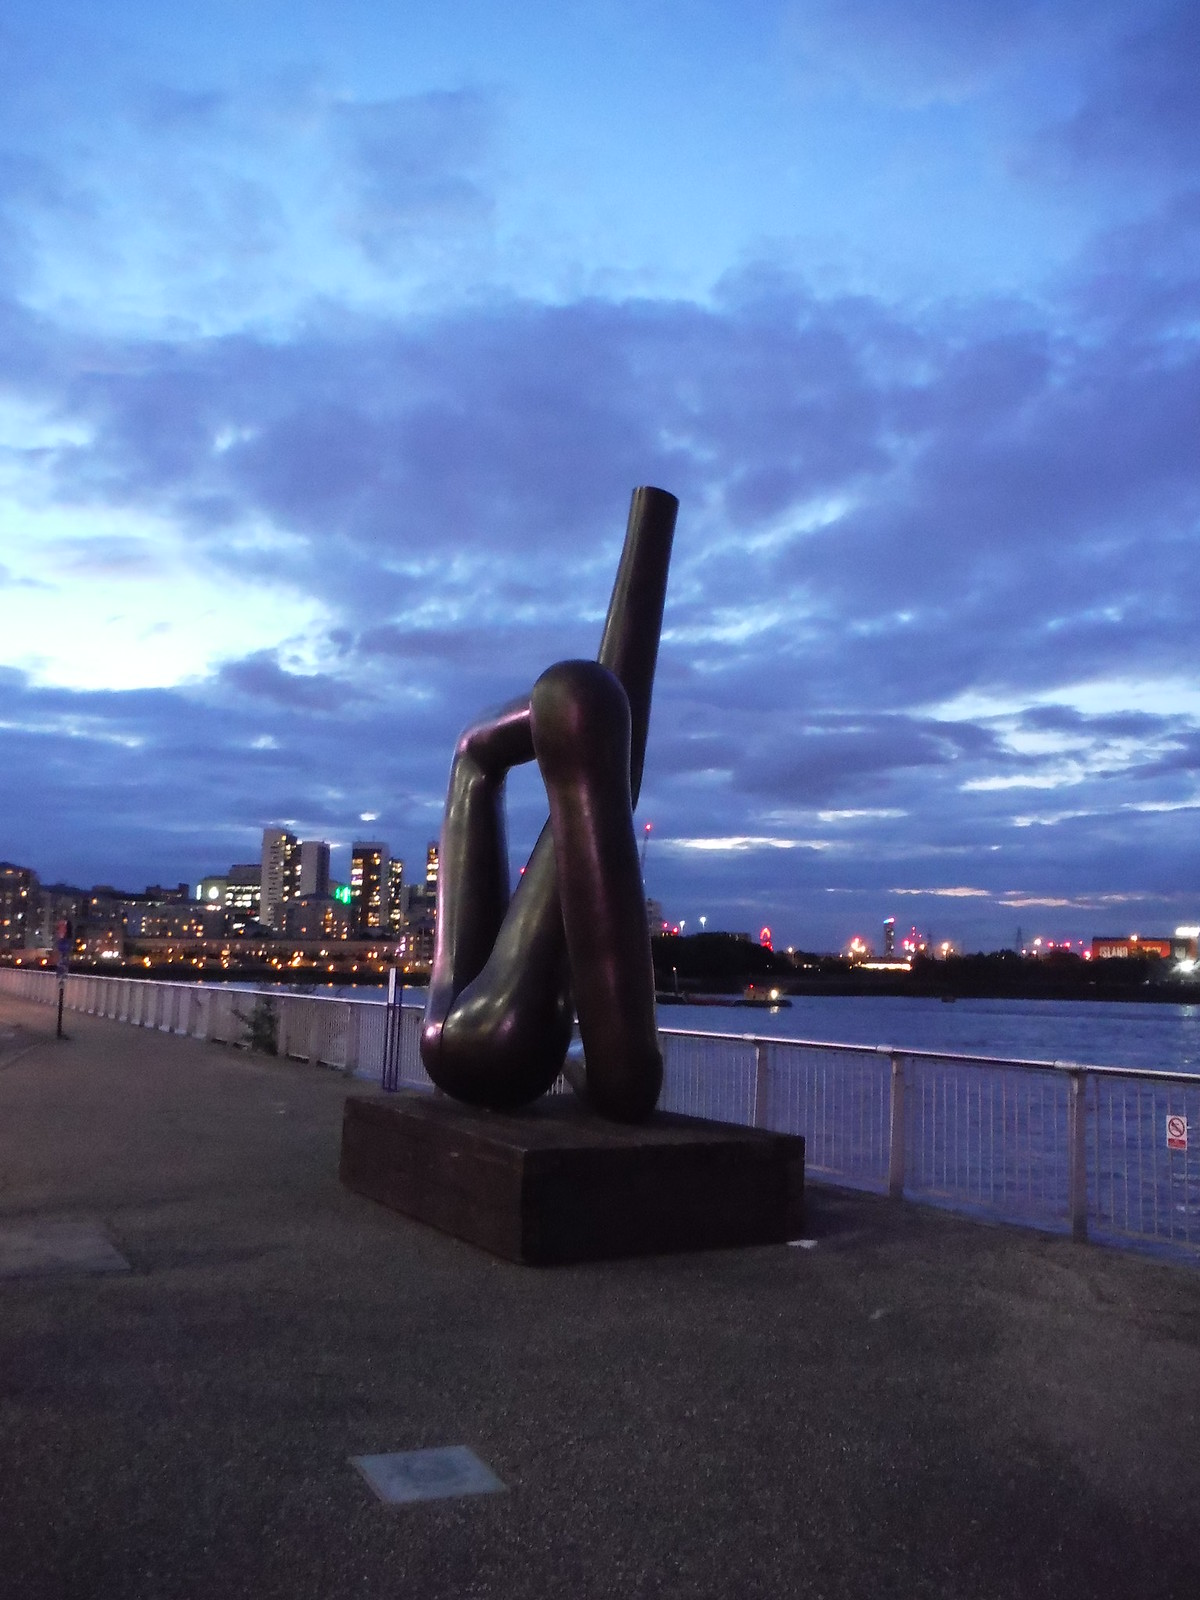 Gary Hume - Liberty Grip (at dusk) SWC Short Walk 21 - The Line Modern Art Walk (Stratford to North Greenwich)